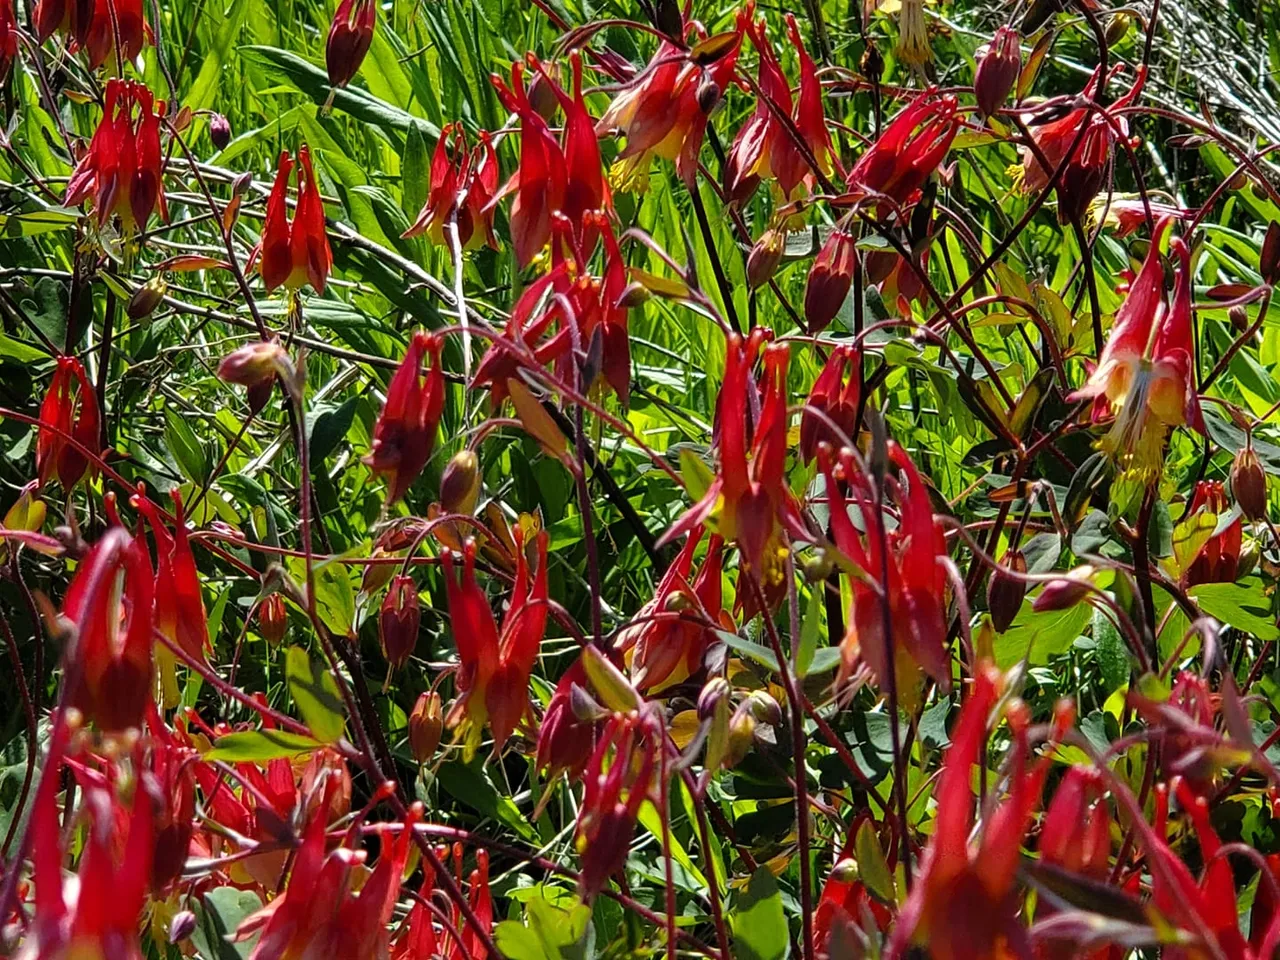 Cluster of red columbine flowers